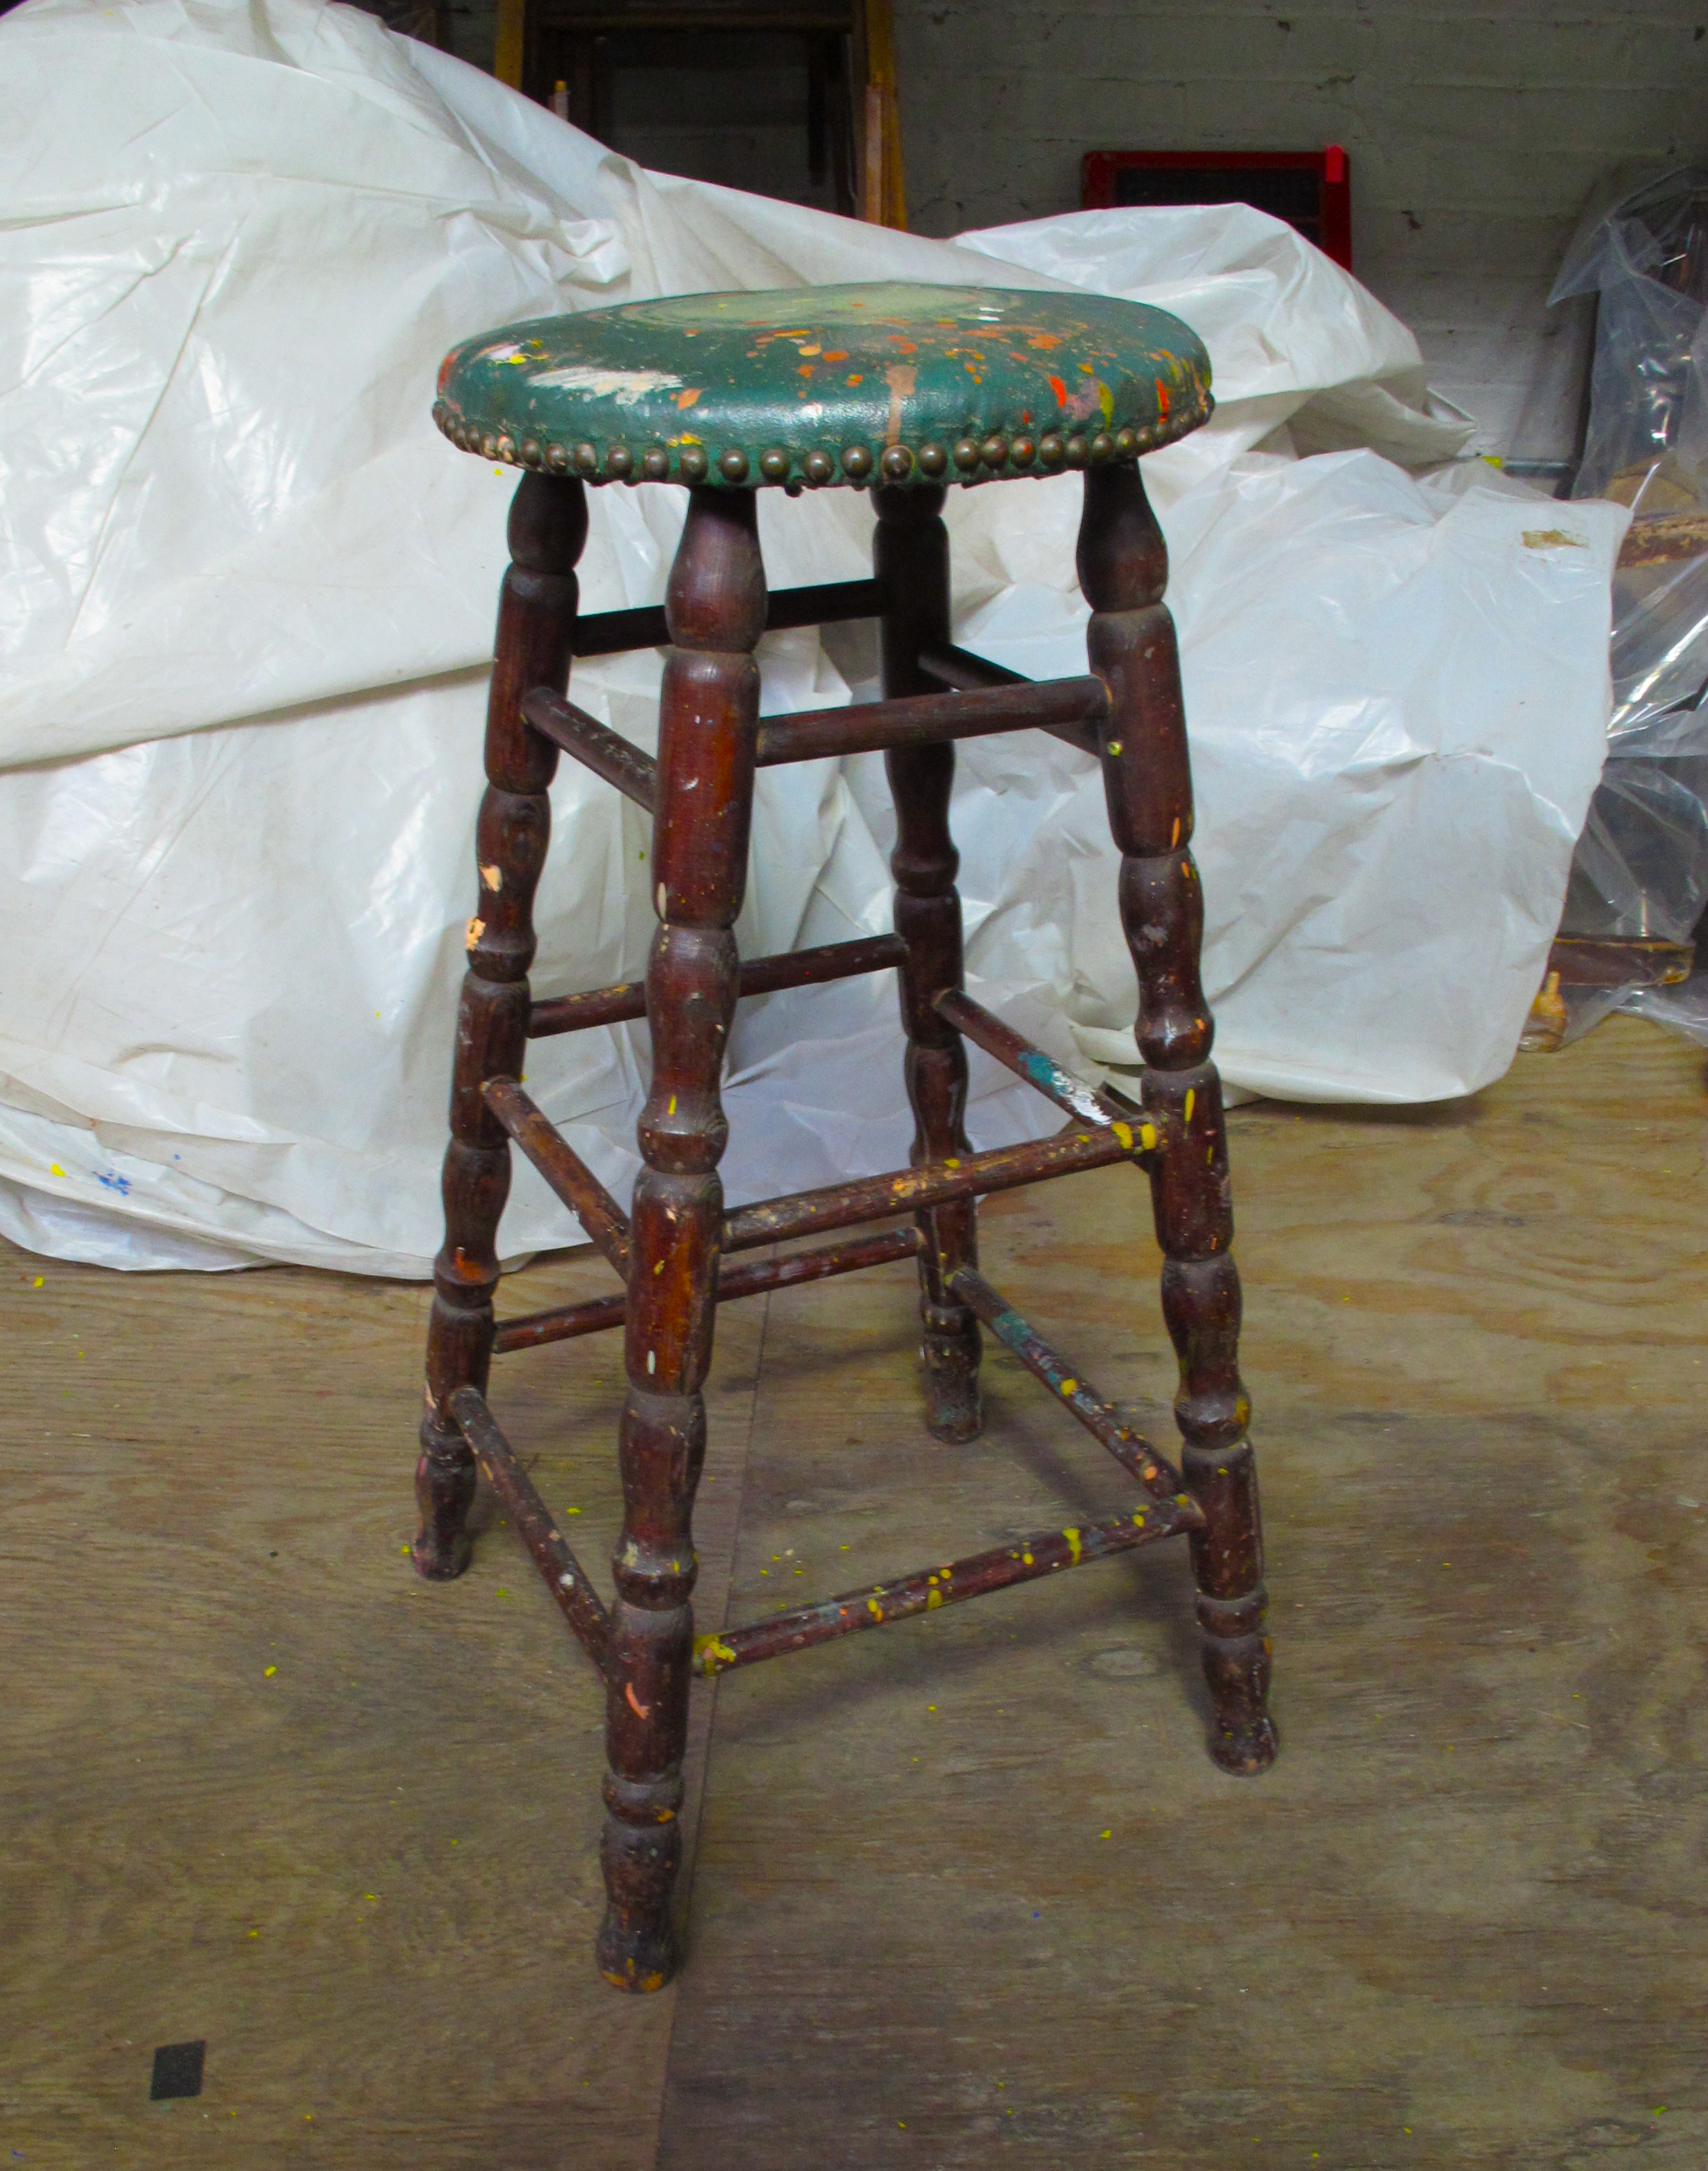 Green Seated Painter's stool $30